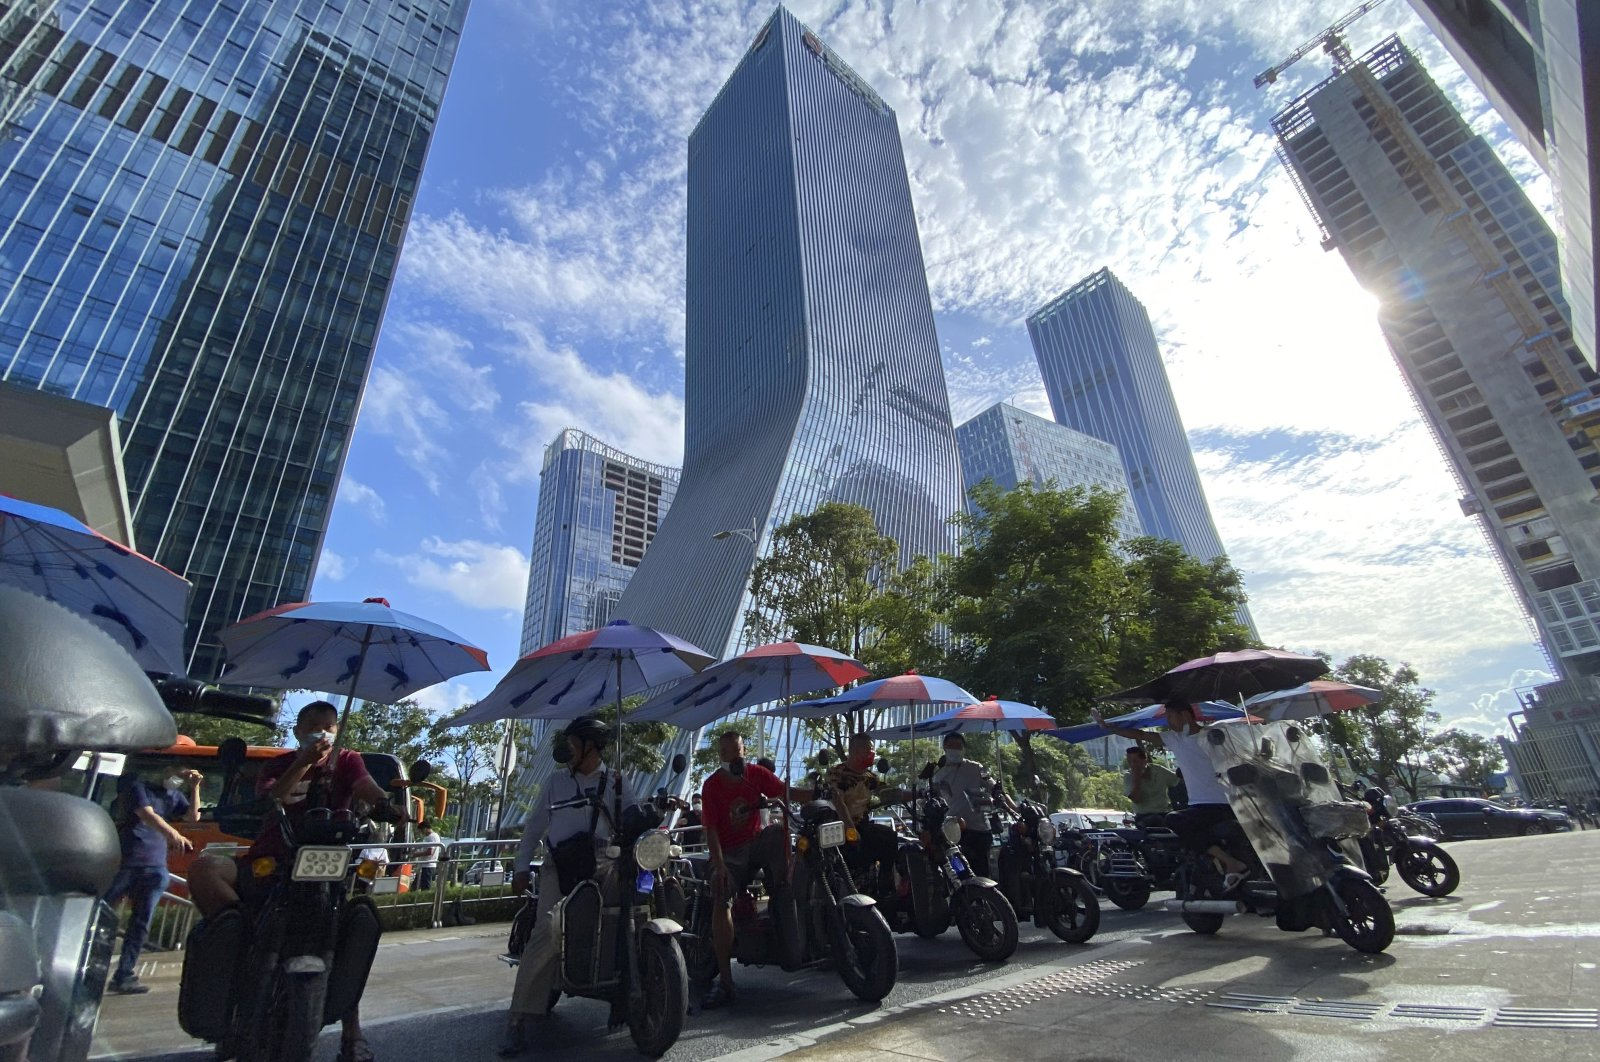 Men on electric bikes wait for riders near the Evergrande headquarters (C) in Shenzhen, China, Sept. 24, 2021. (AP Photo)